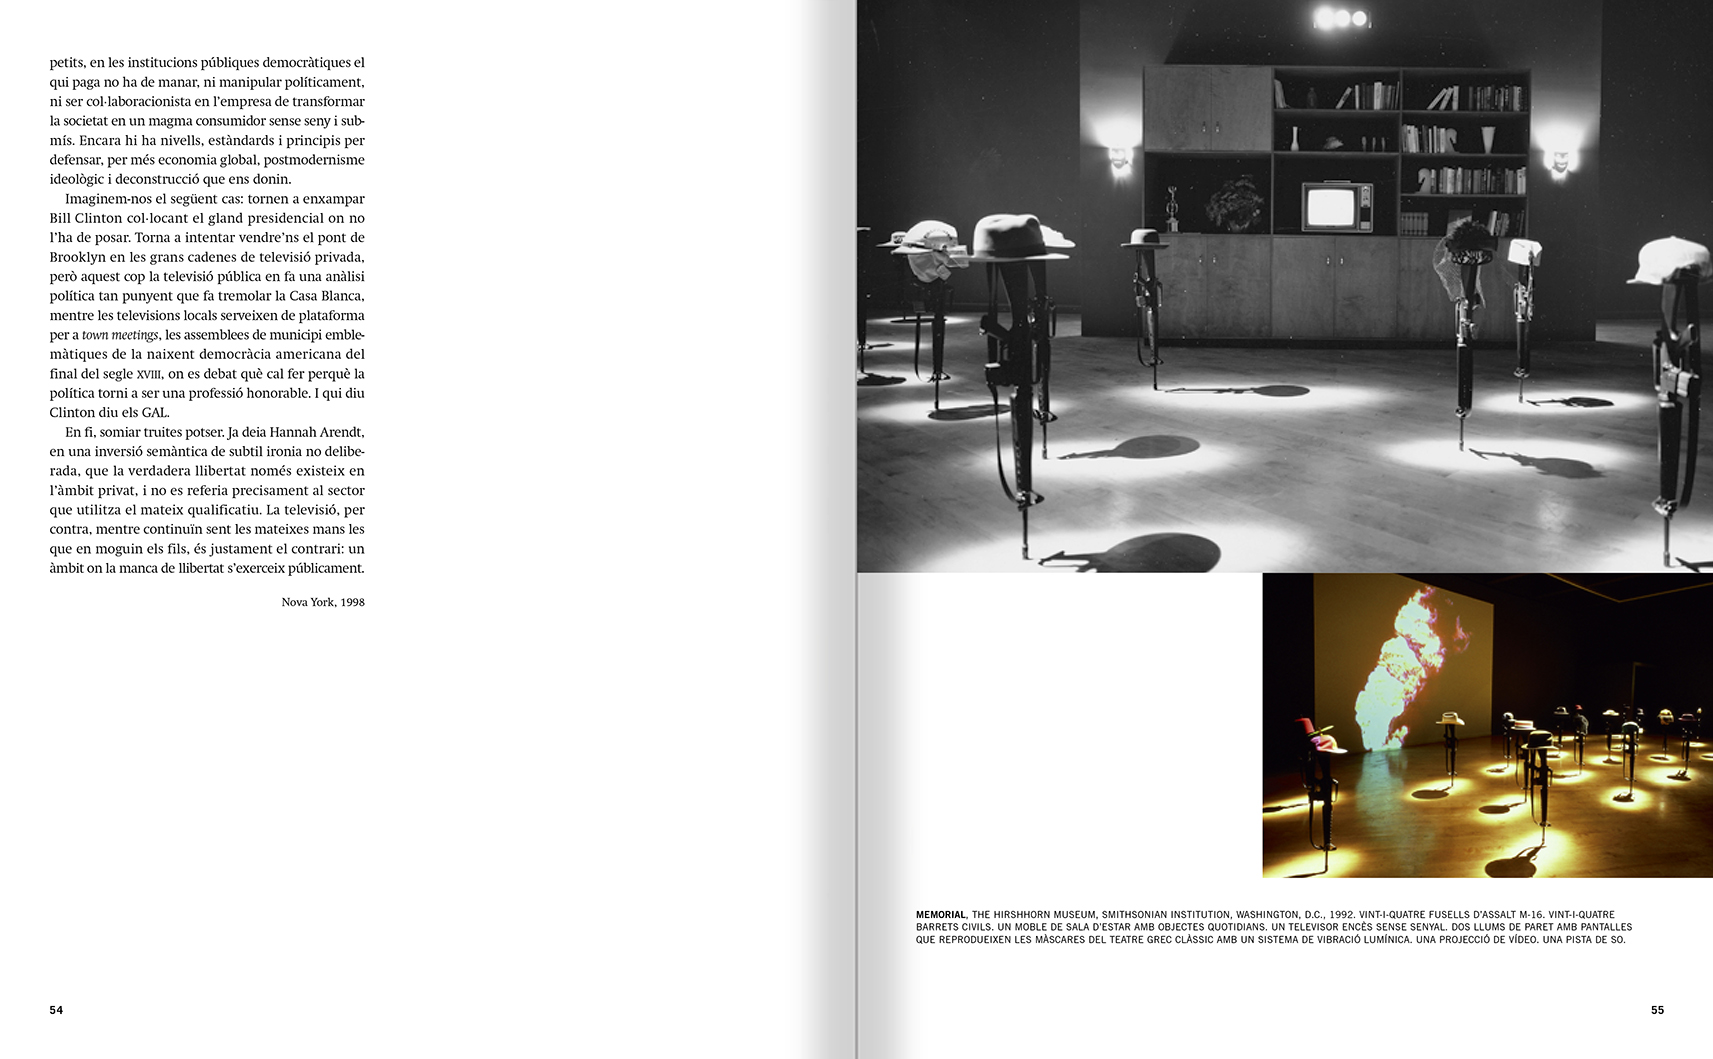 Selection from the catalogue 'Francesc Torres. Da capo', pages 54 and 55